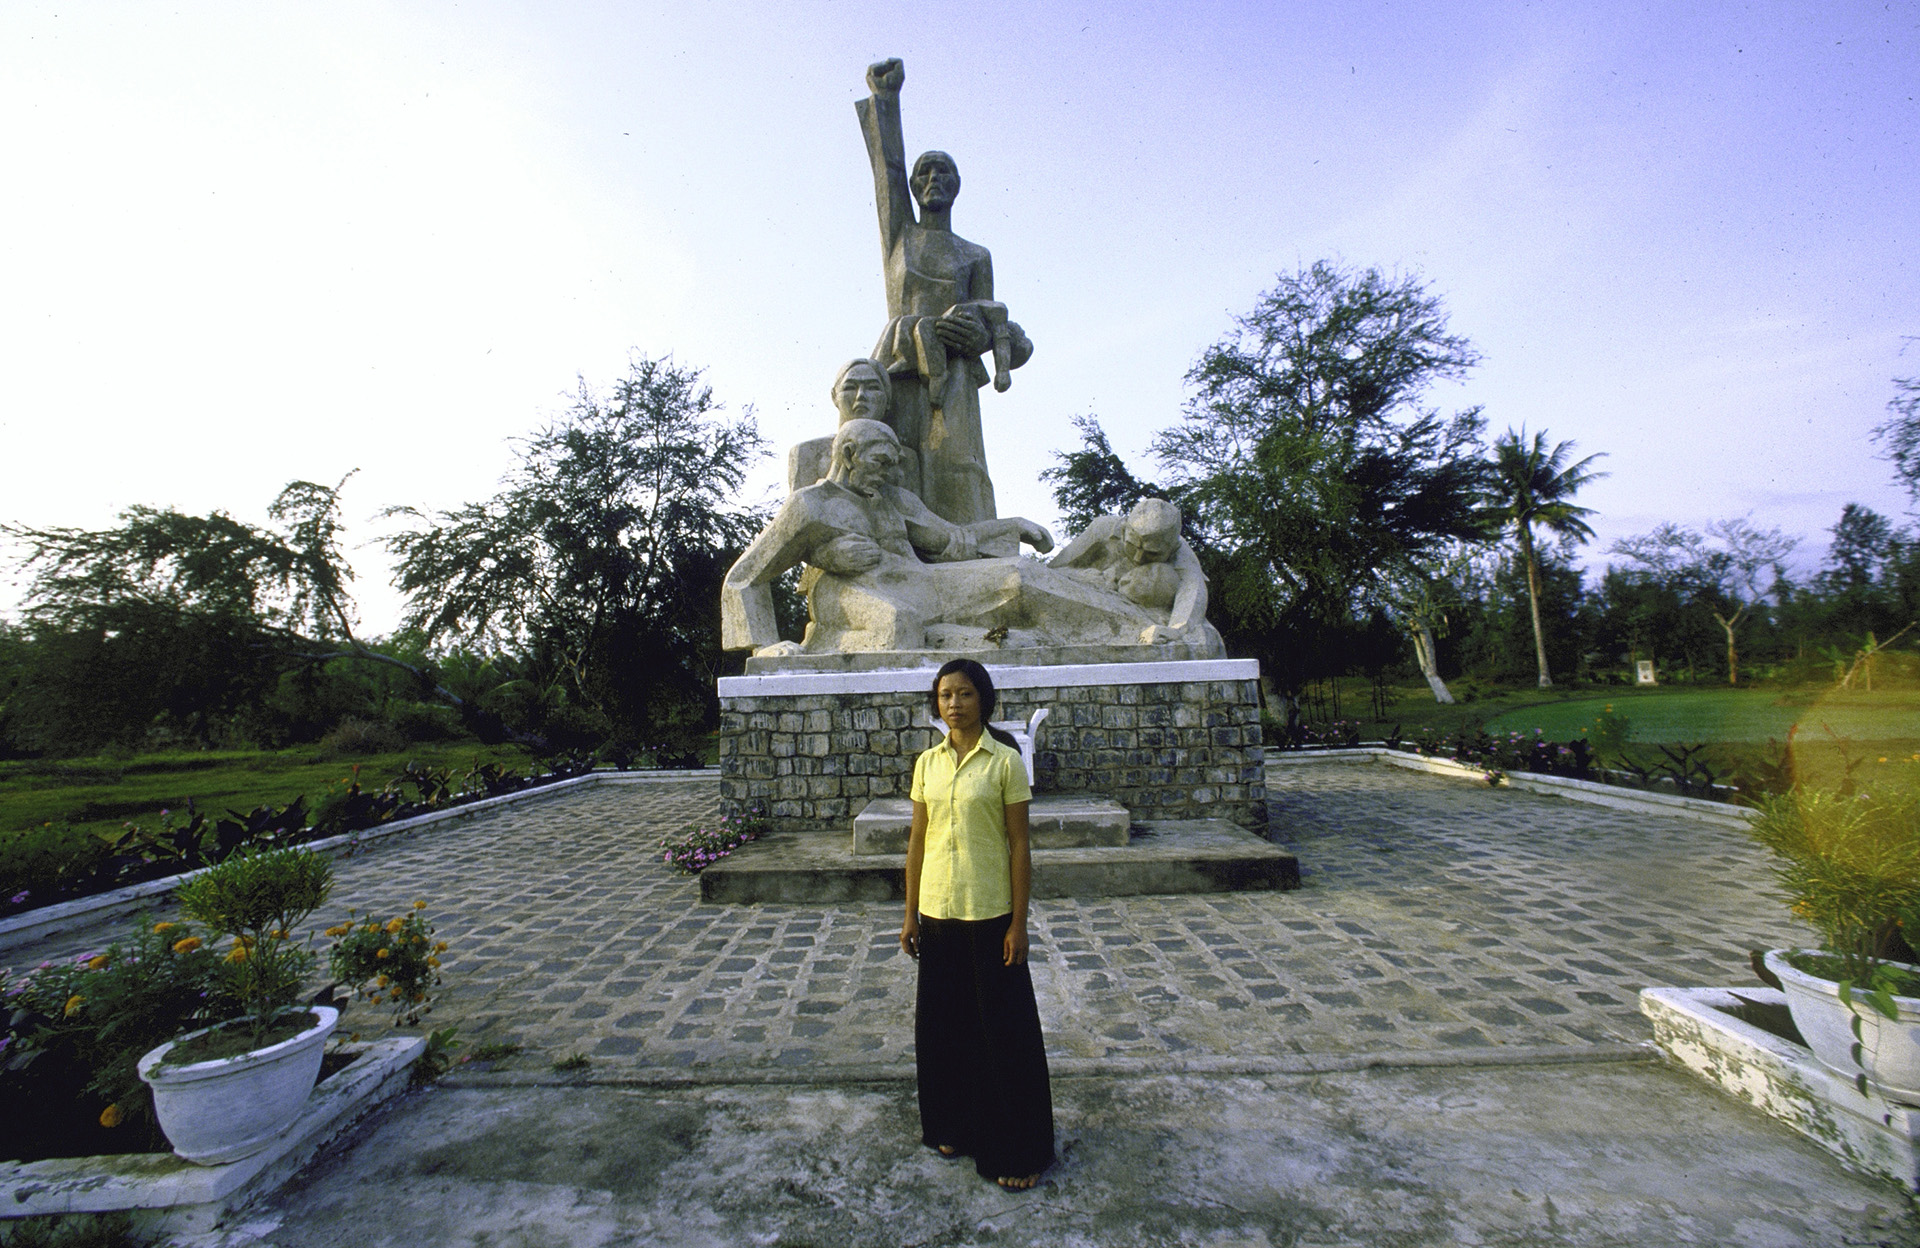 Pham Thi Trinh, one of the few survivors of My Lai Massacre, standing in front of monument honoring victims. (Credit: Dirck Halstead/The LIFE Images Collection/Getty Images)